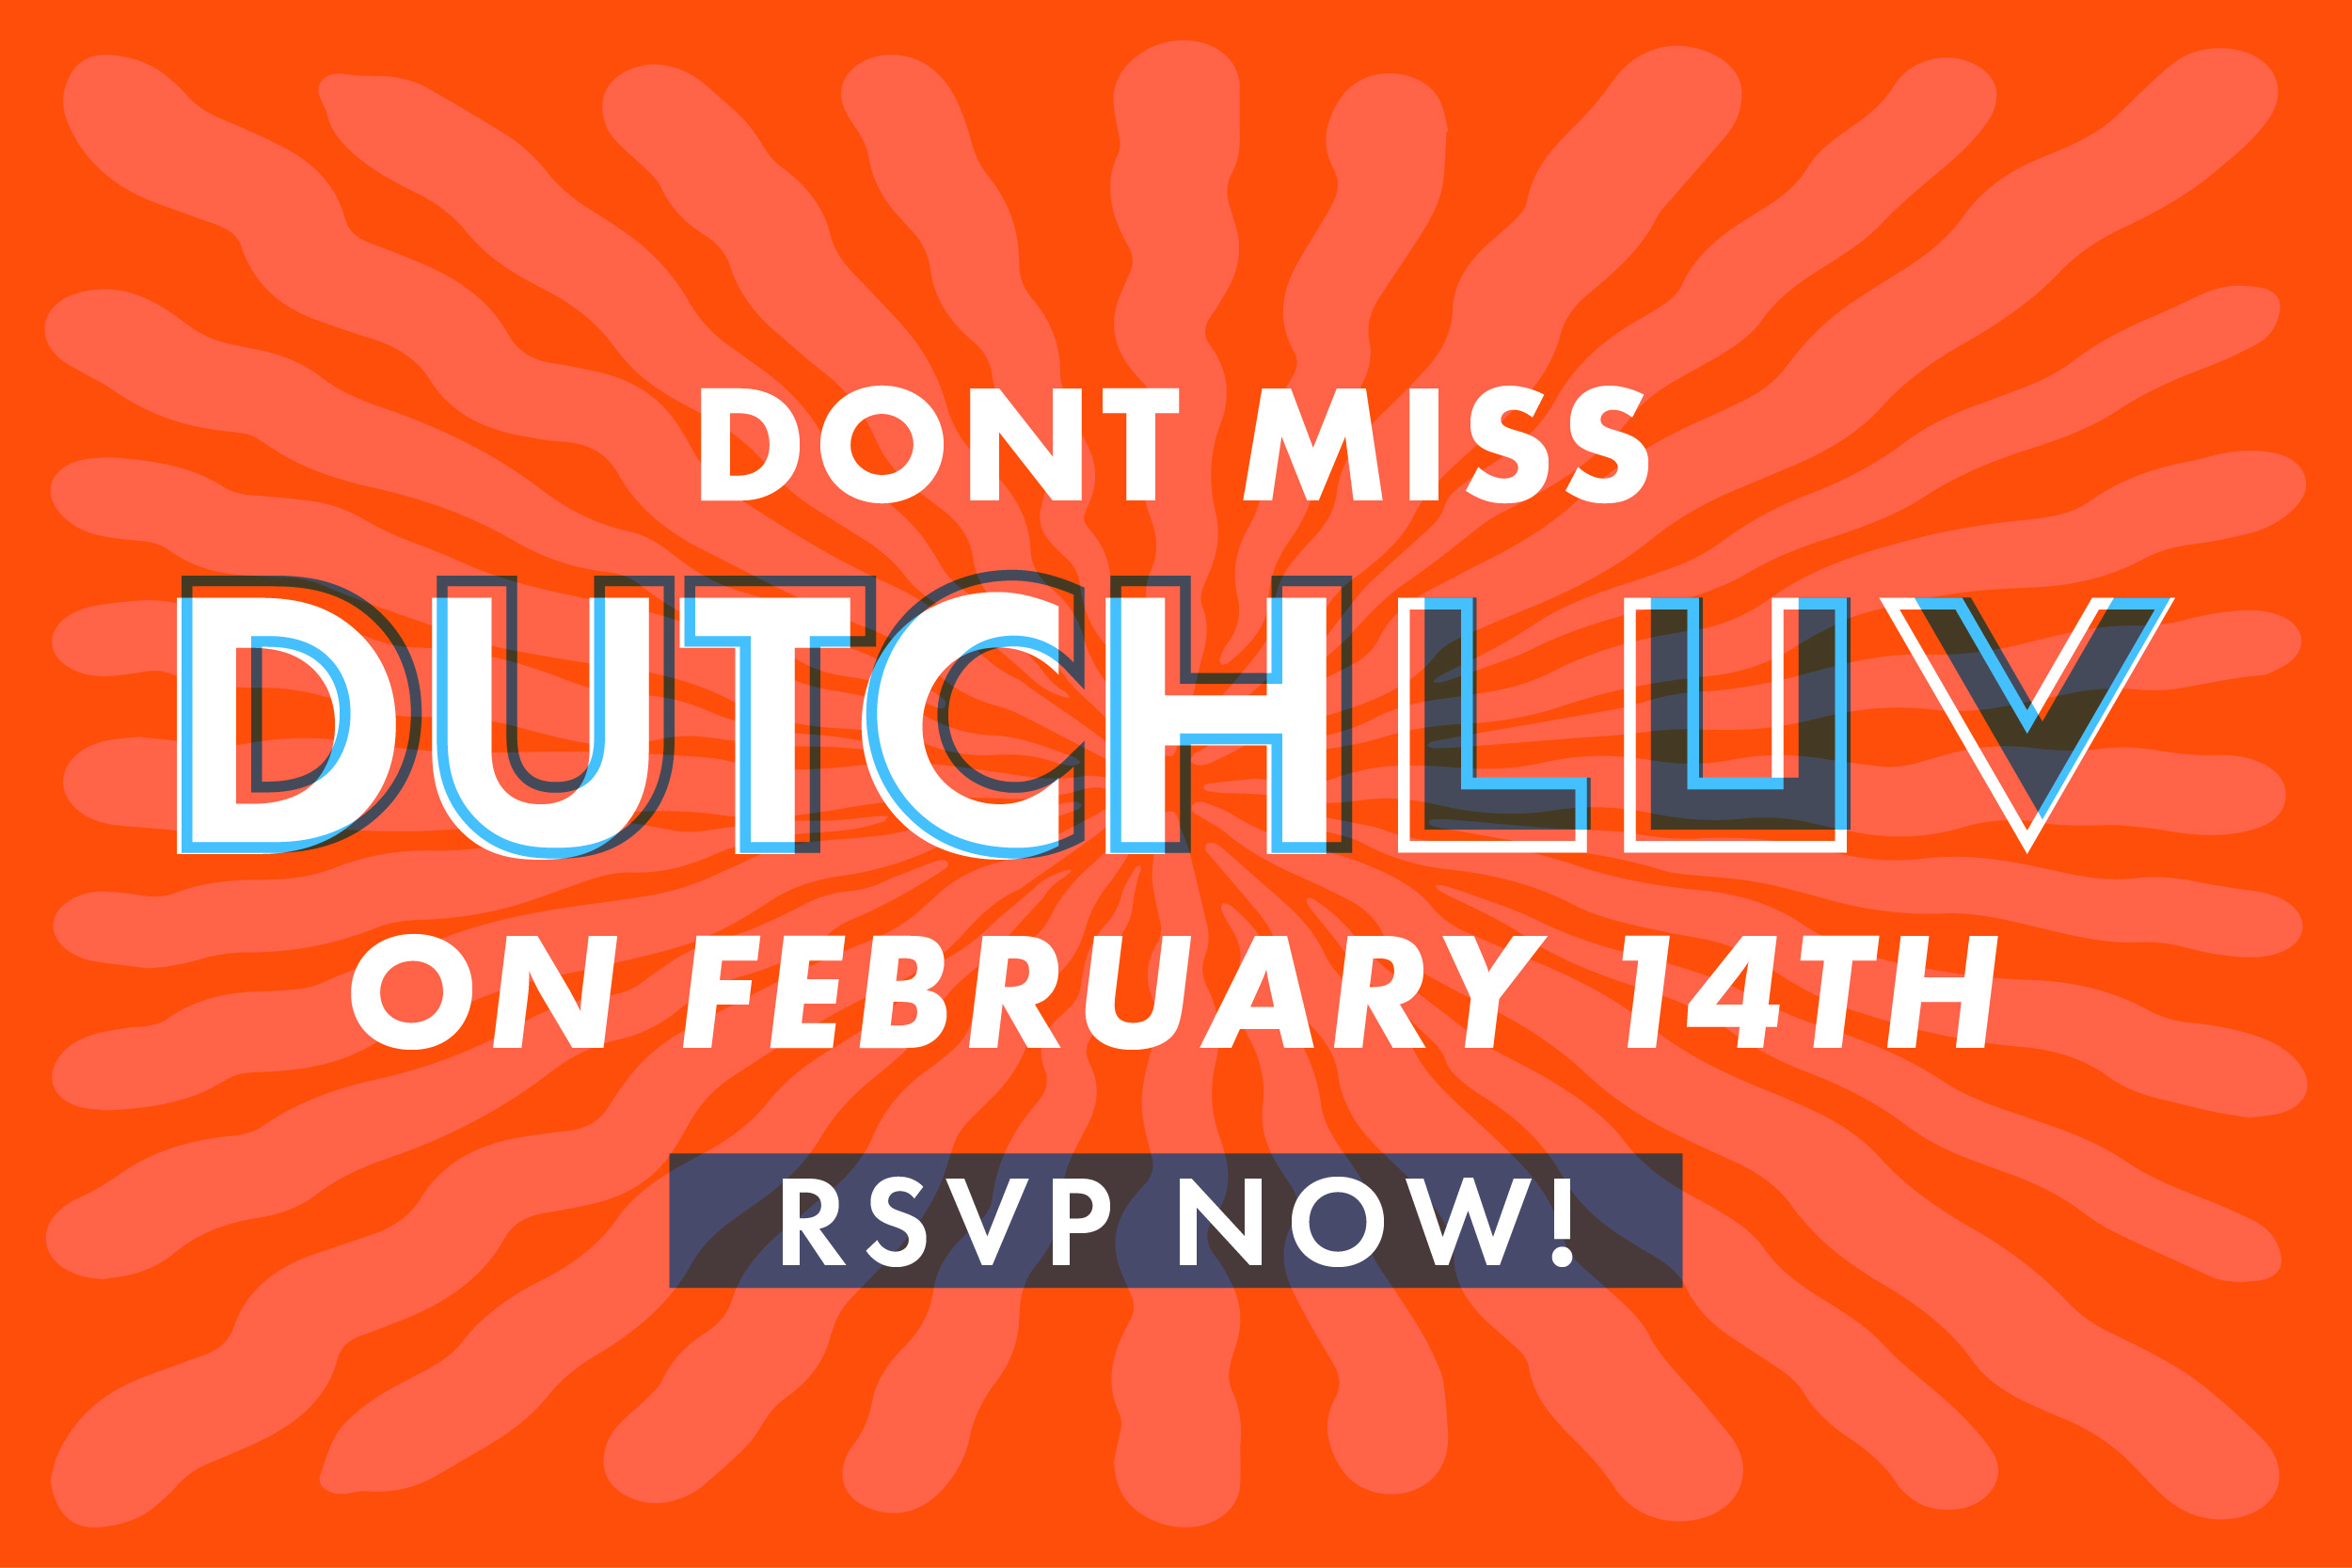 Don't miss Dutch Luv on February 14th. RSVP NOW! (Link to facebook events)